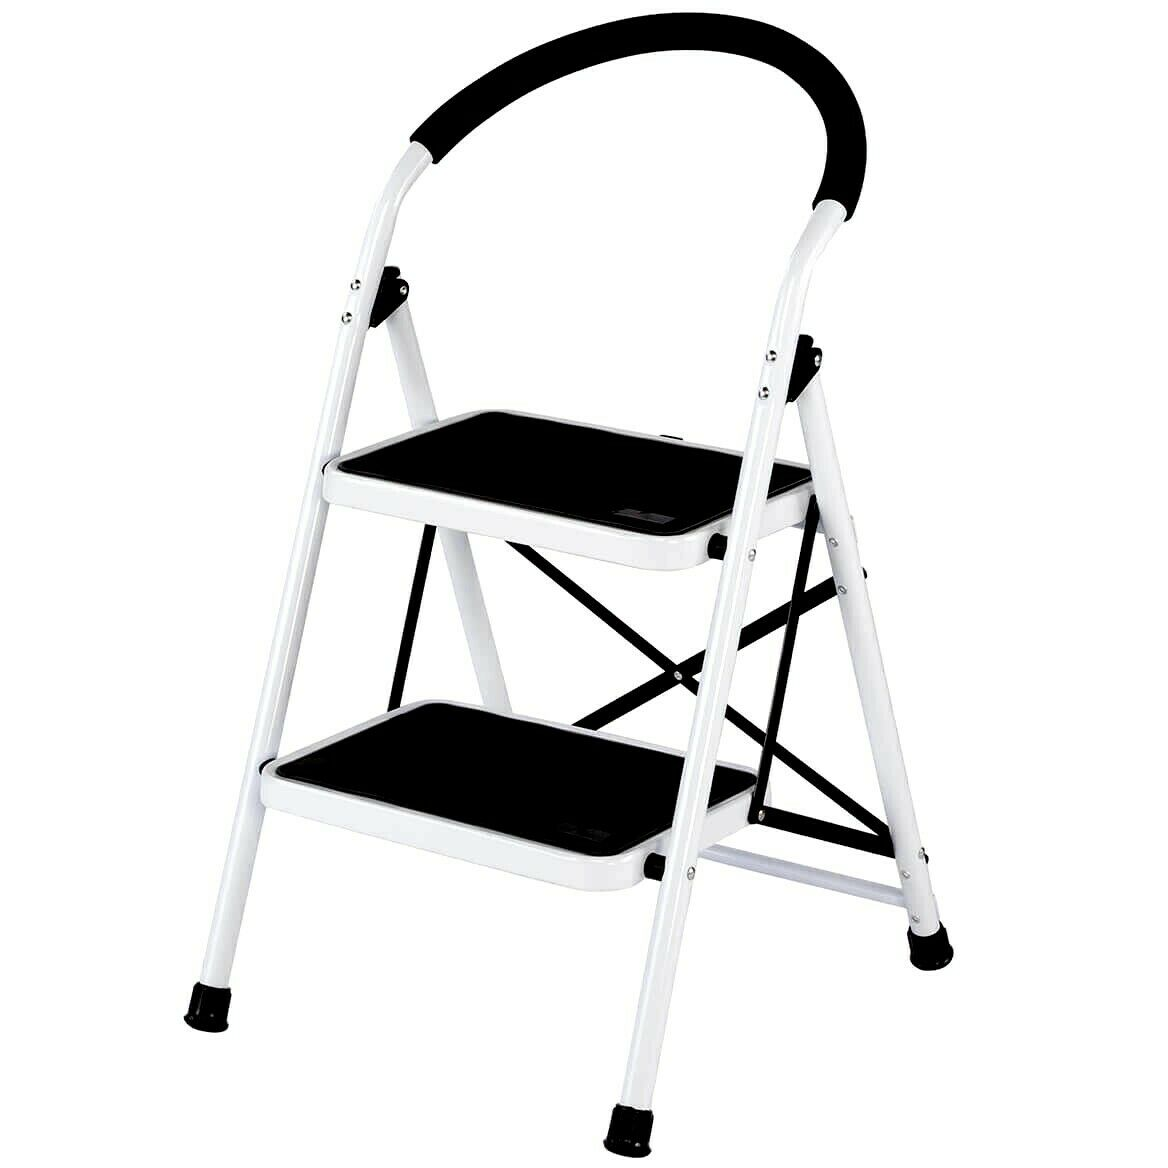 2 Step Ladder Folding Steel Step Stool With Handle Anti-300